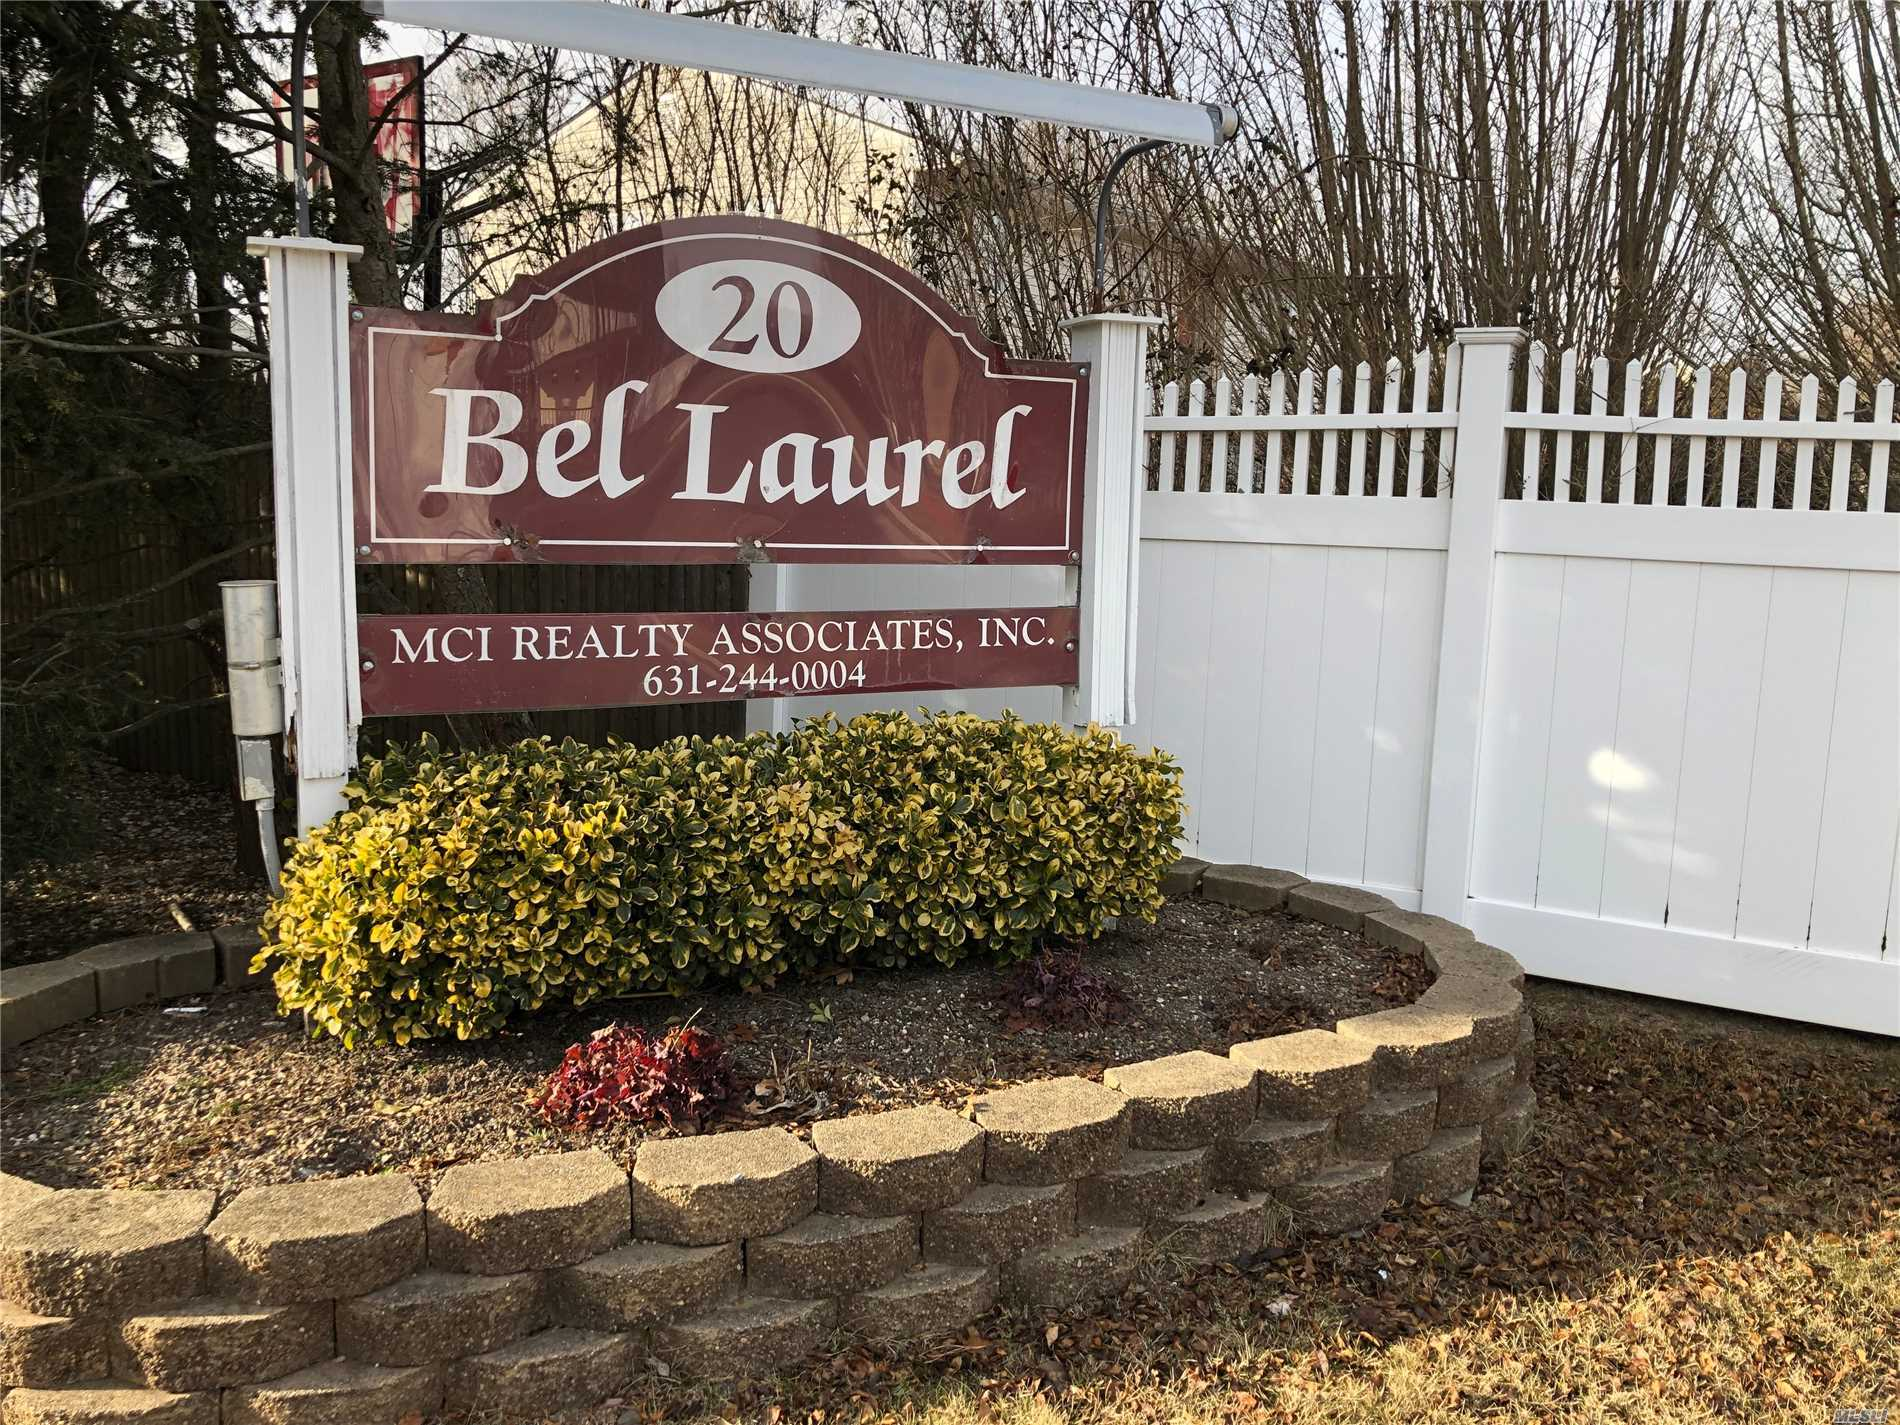 Come See This Lovely Co-Op. Meticulous Unit With Great Light. Large Living Room With Big Picture Window. Large Bedroom With Walk-In Closet. Now Is Your Chance To Live In Bel Laurel. This Is The Only One On The Market!